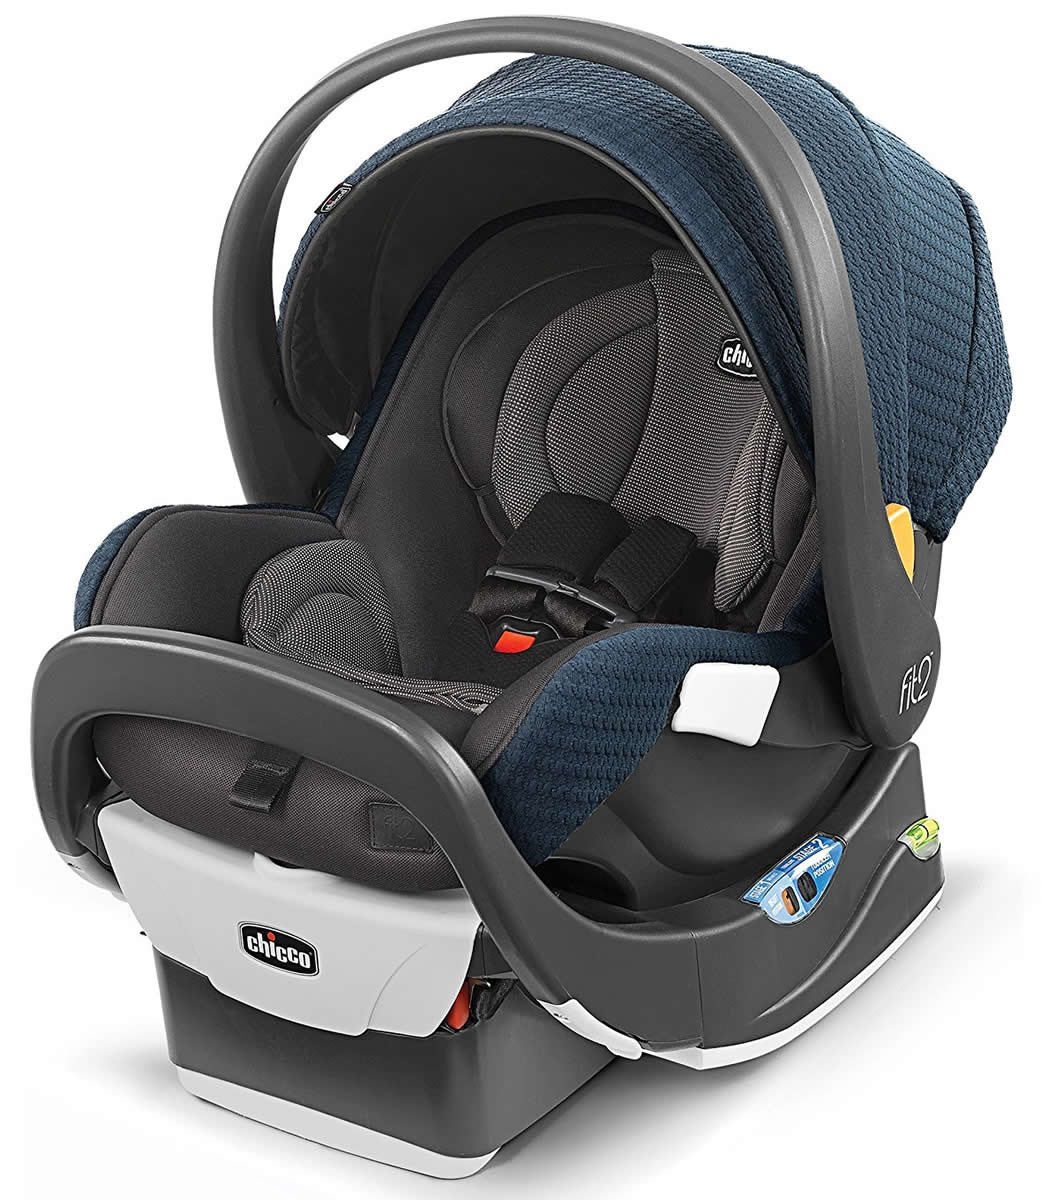 Chicco Fit2 Rear-Facing Infant & Toddler Car Seat - Tullio